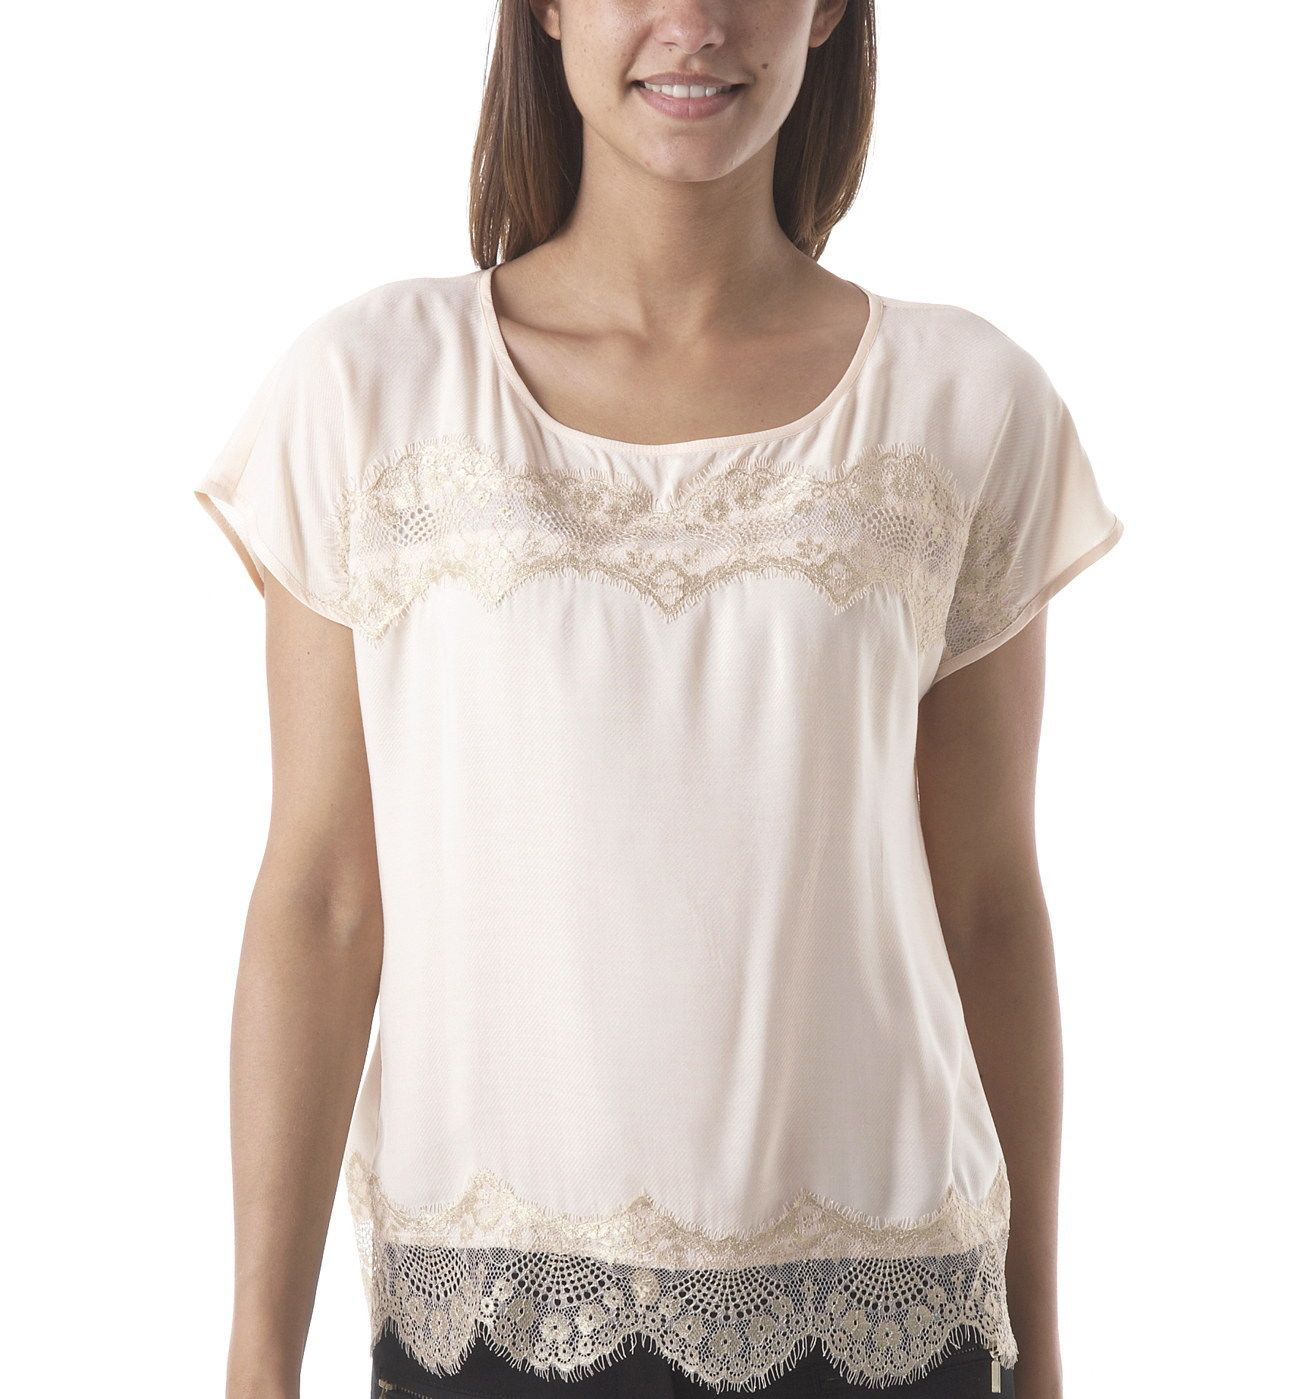 4c8349f06b Chic little top - Light pale pink - Women - Tops - Promod | Promod ...